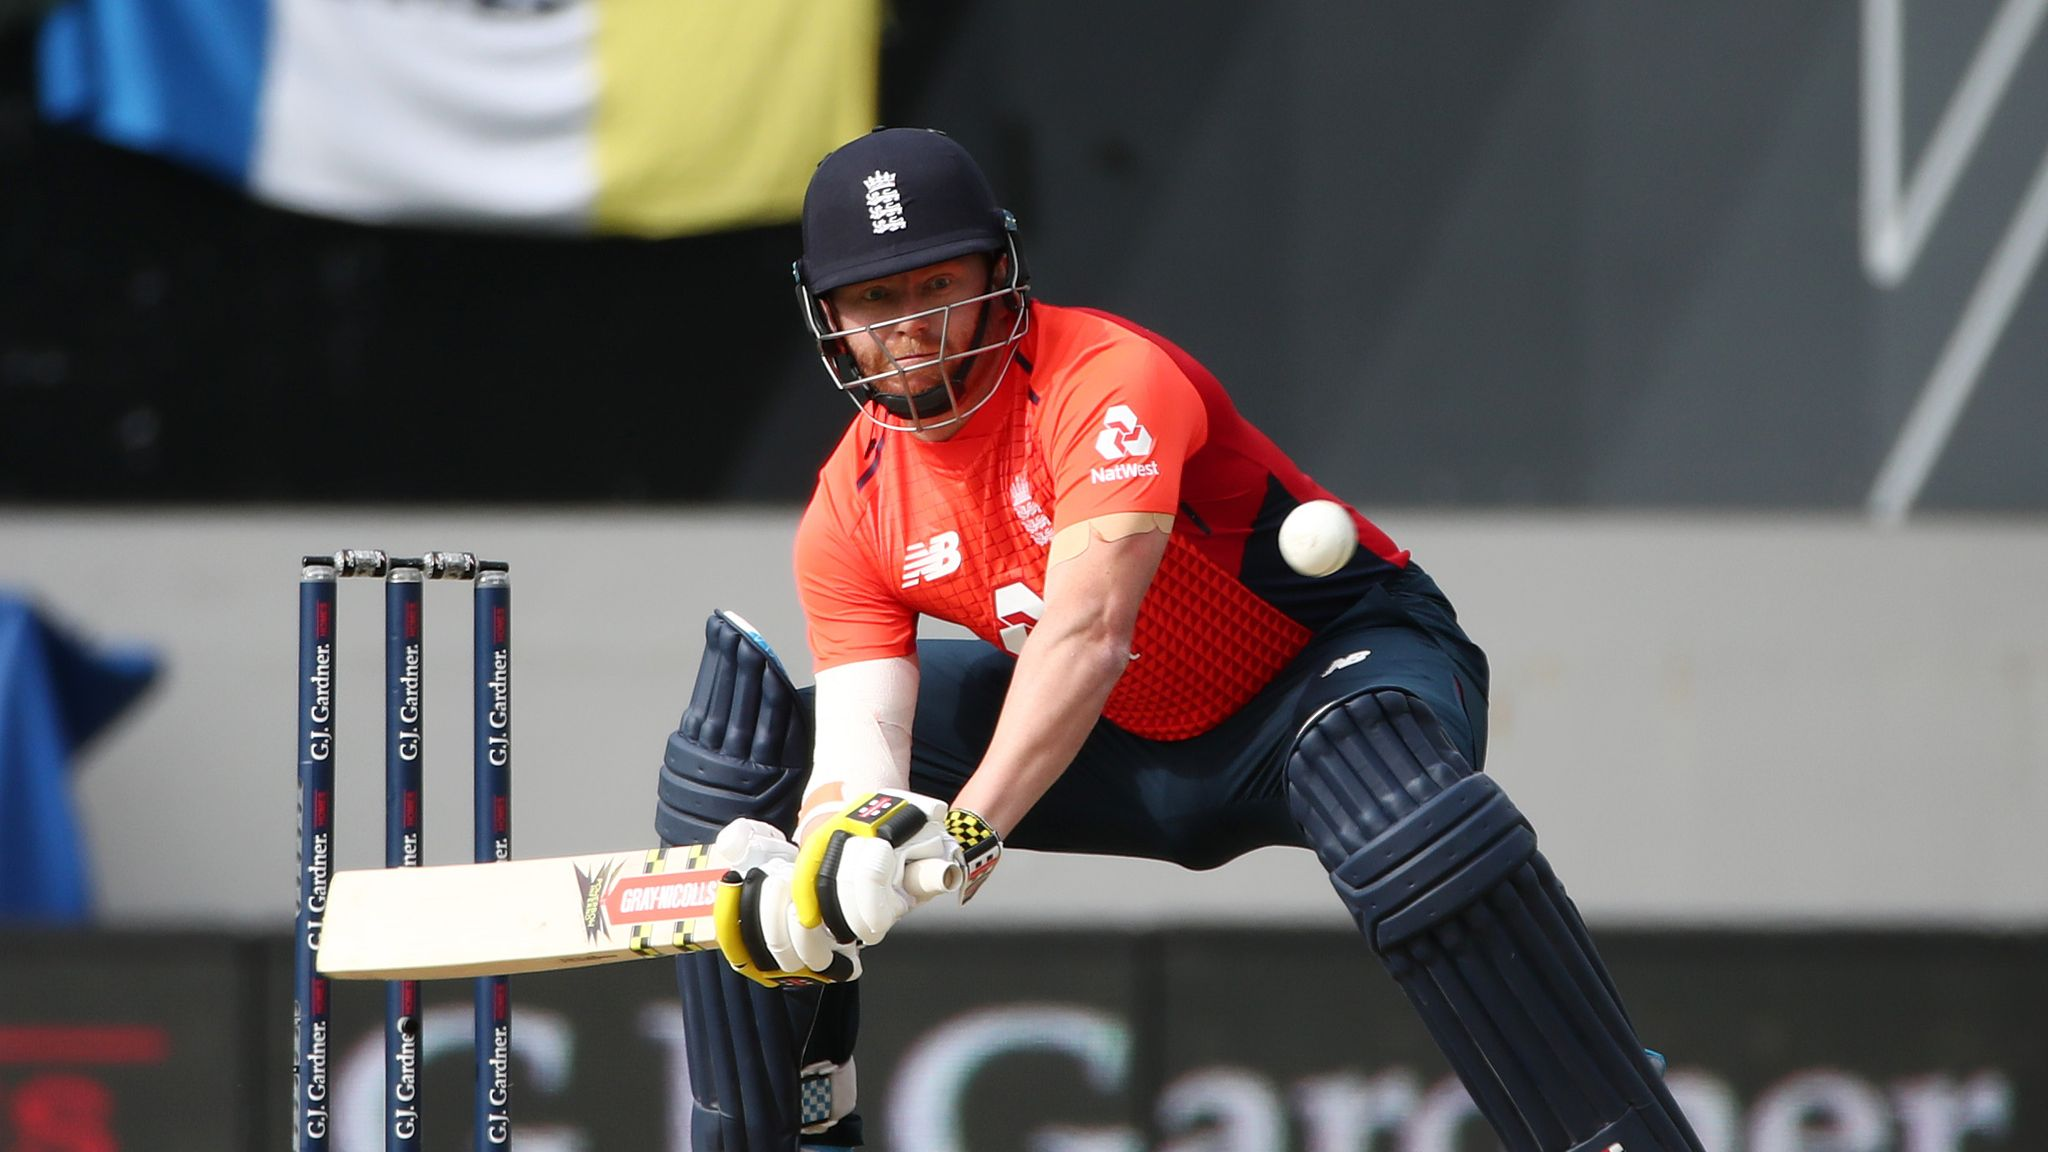 England's Jonny Bairstow reprimanded for 'audible obscenity' during New Zealand T20